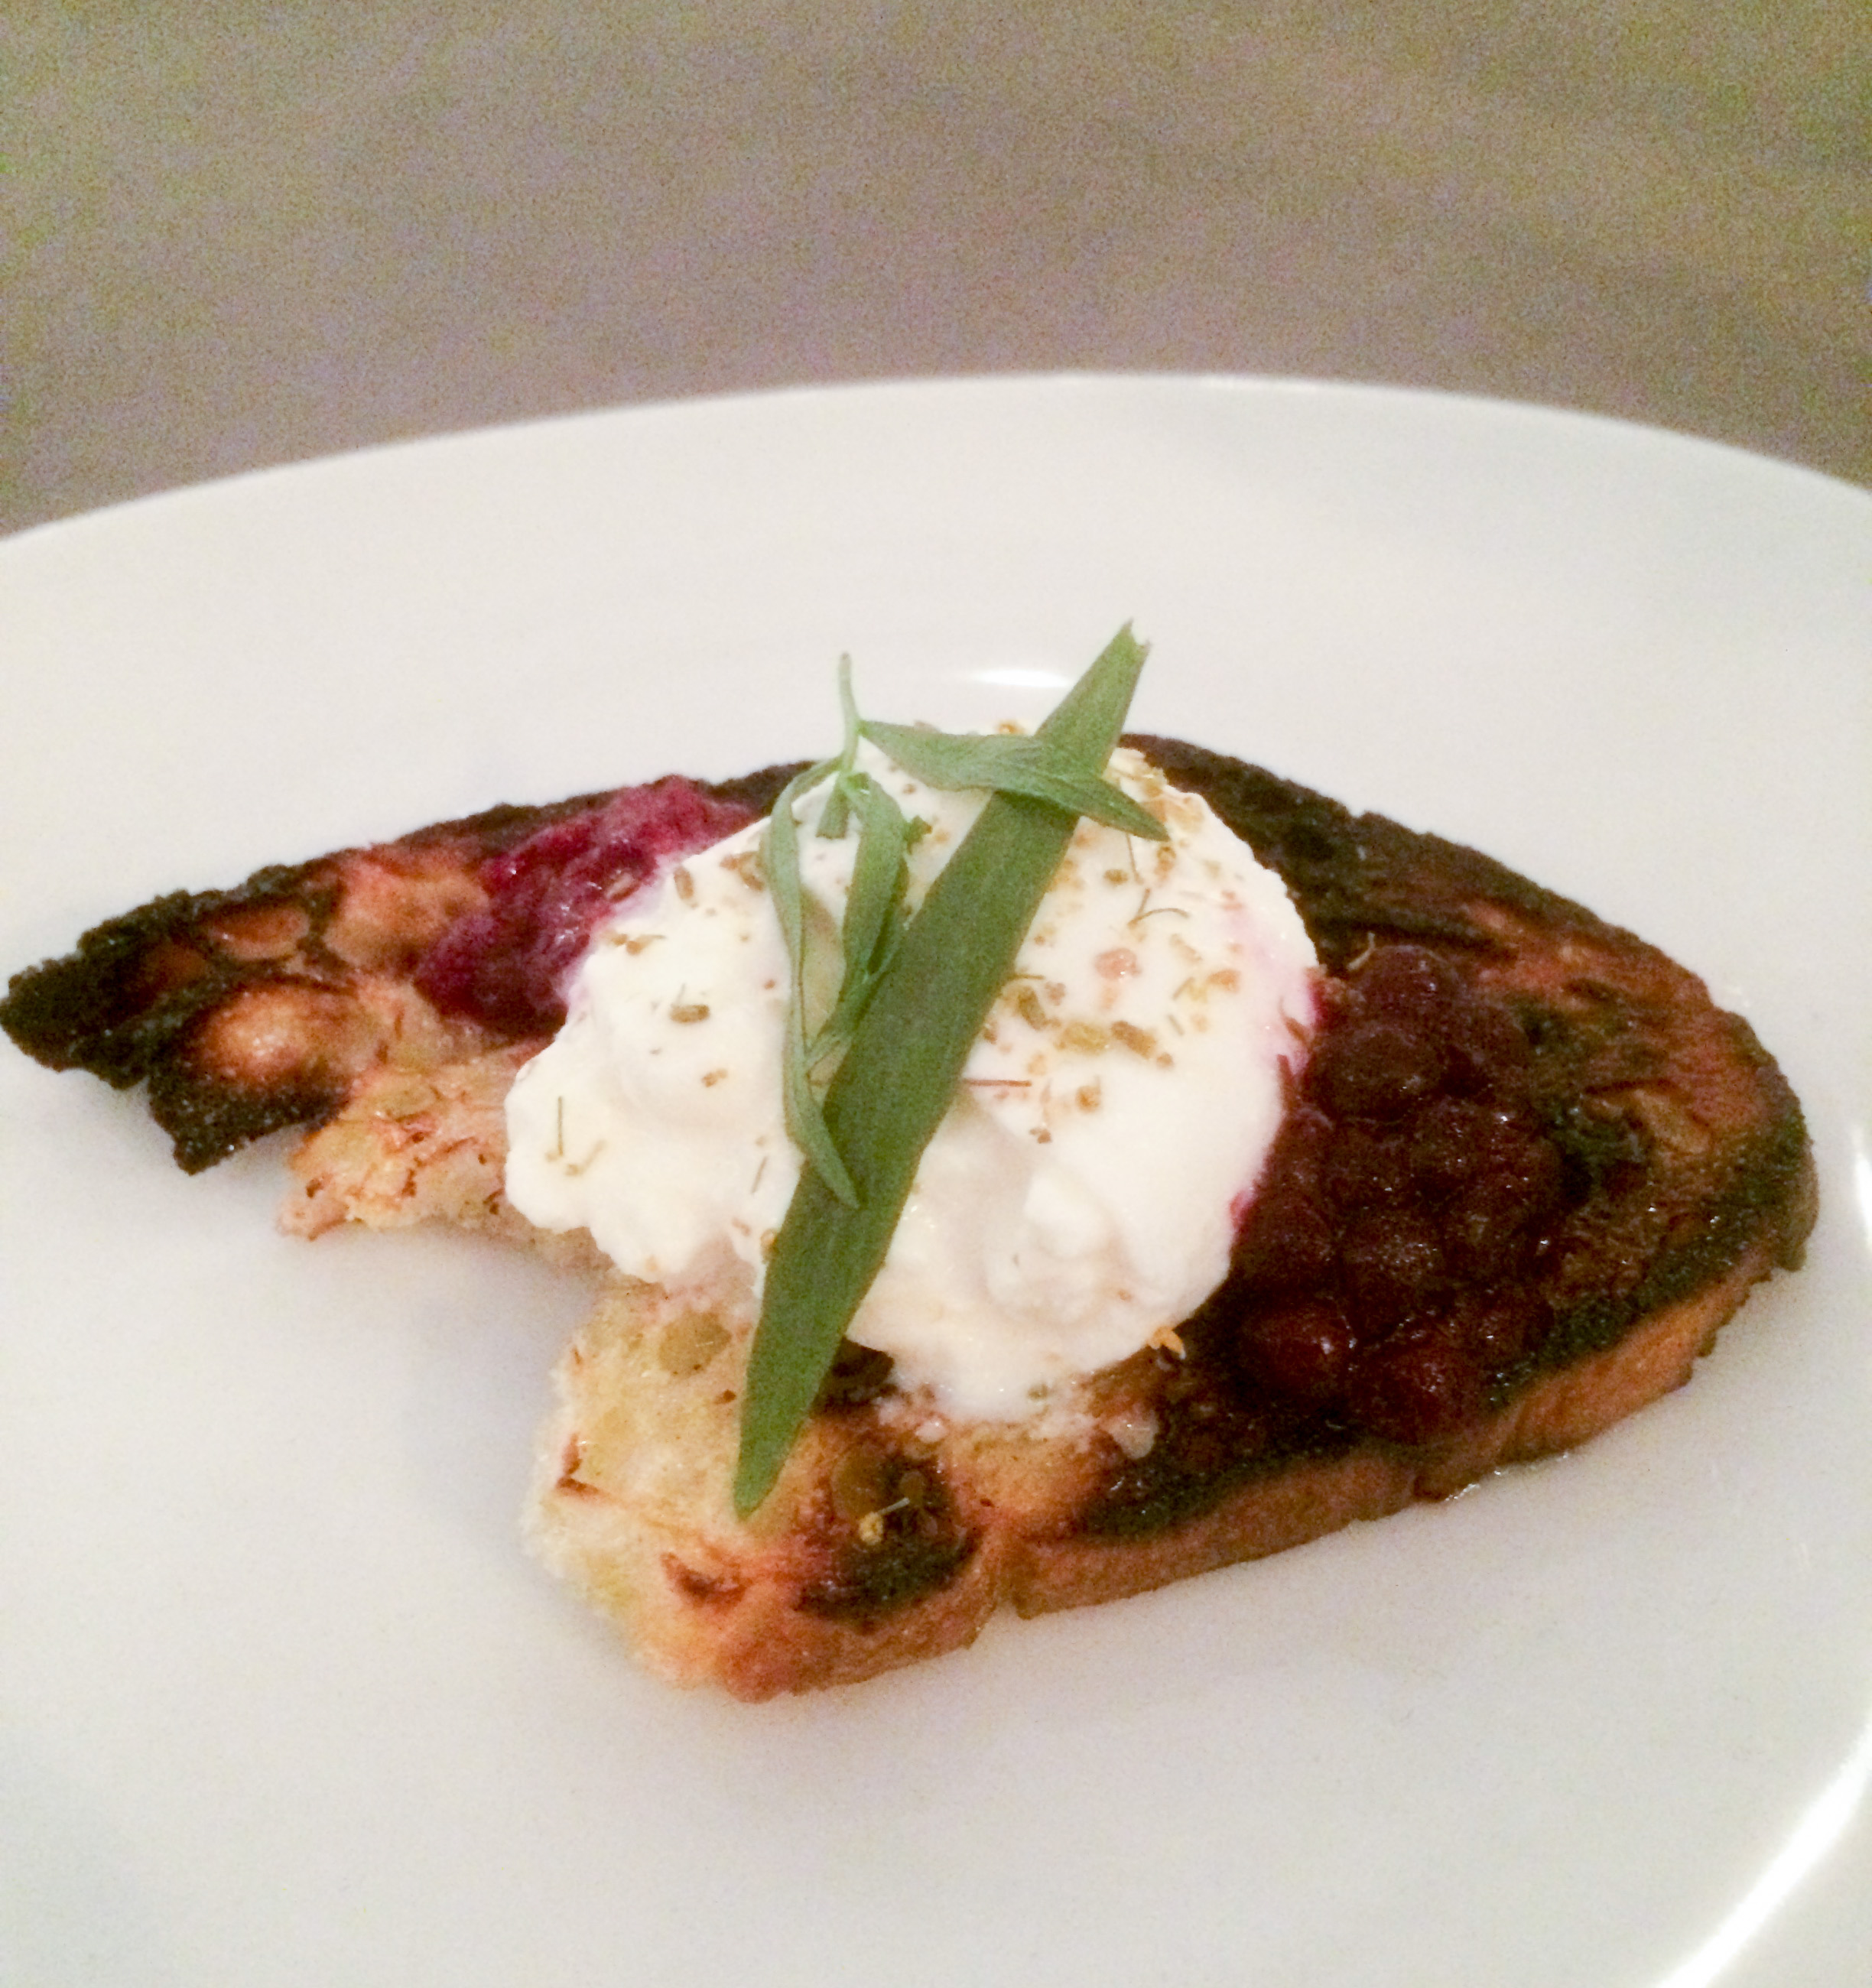 Charred Bread with Burrata, Local Berries + Fennel Pollen